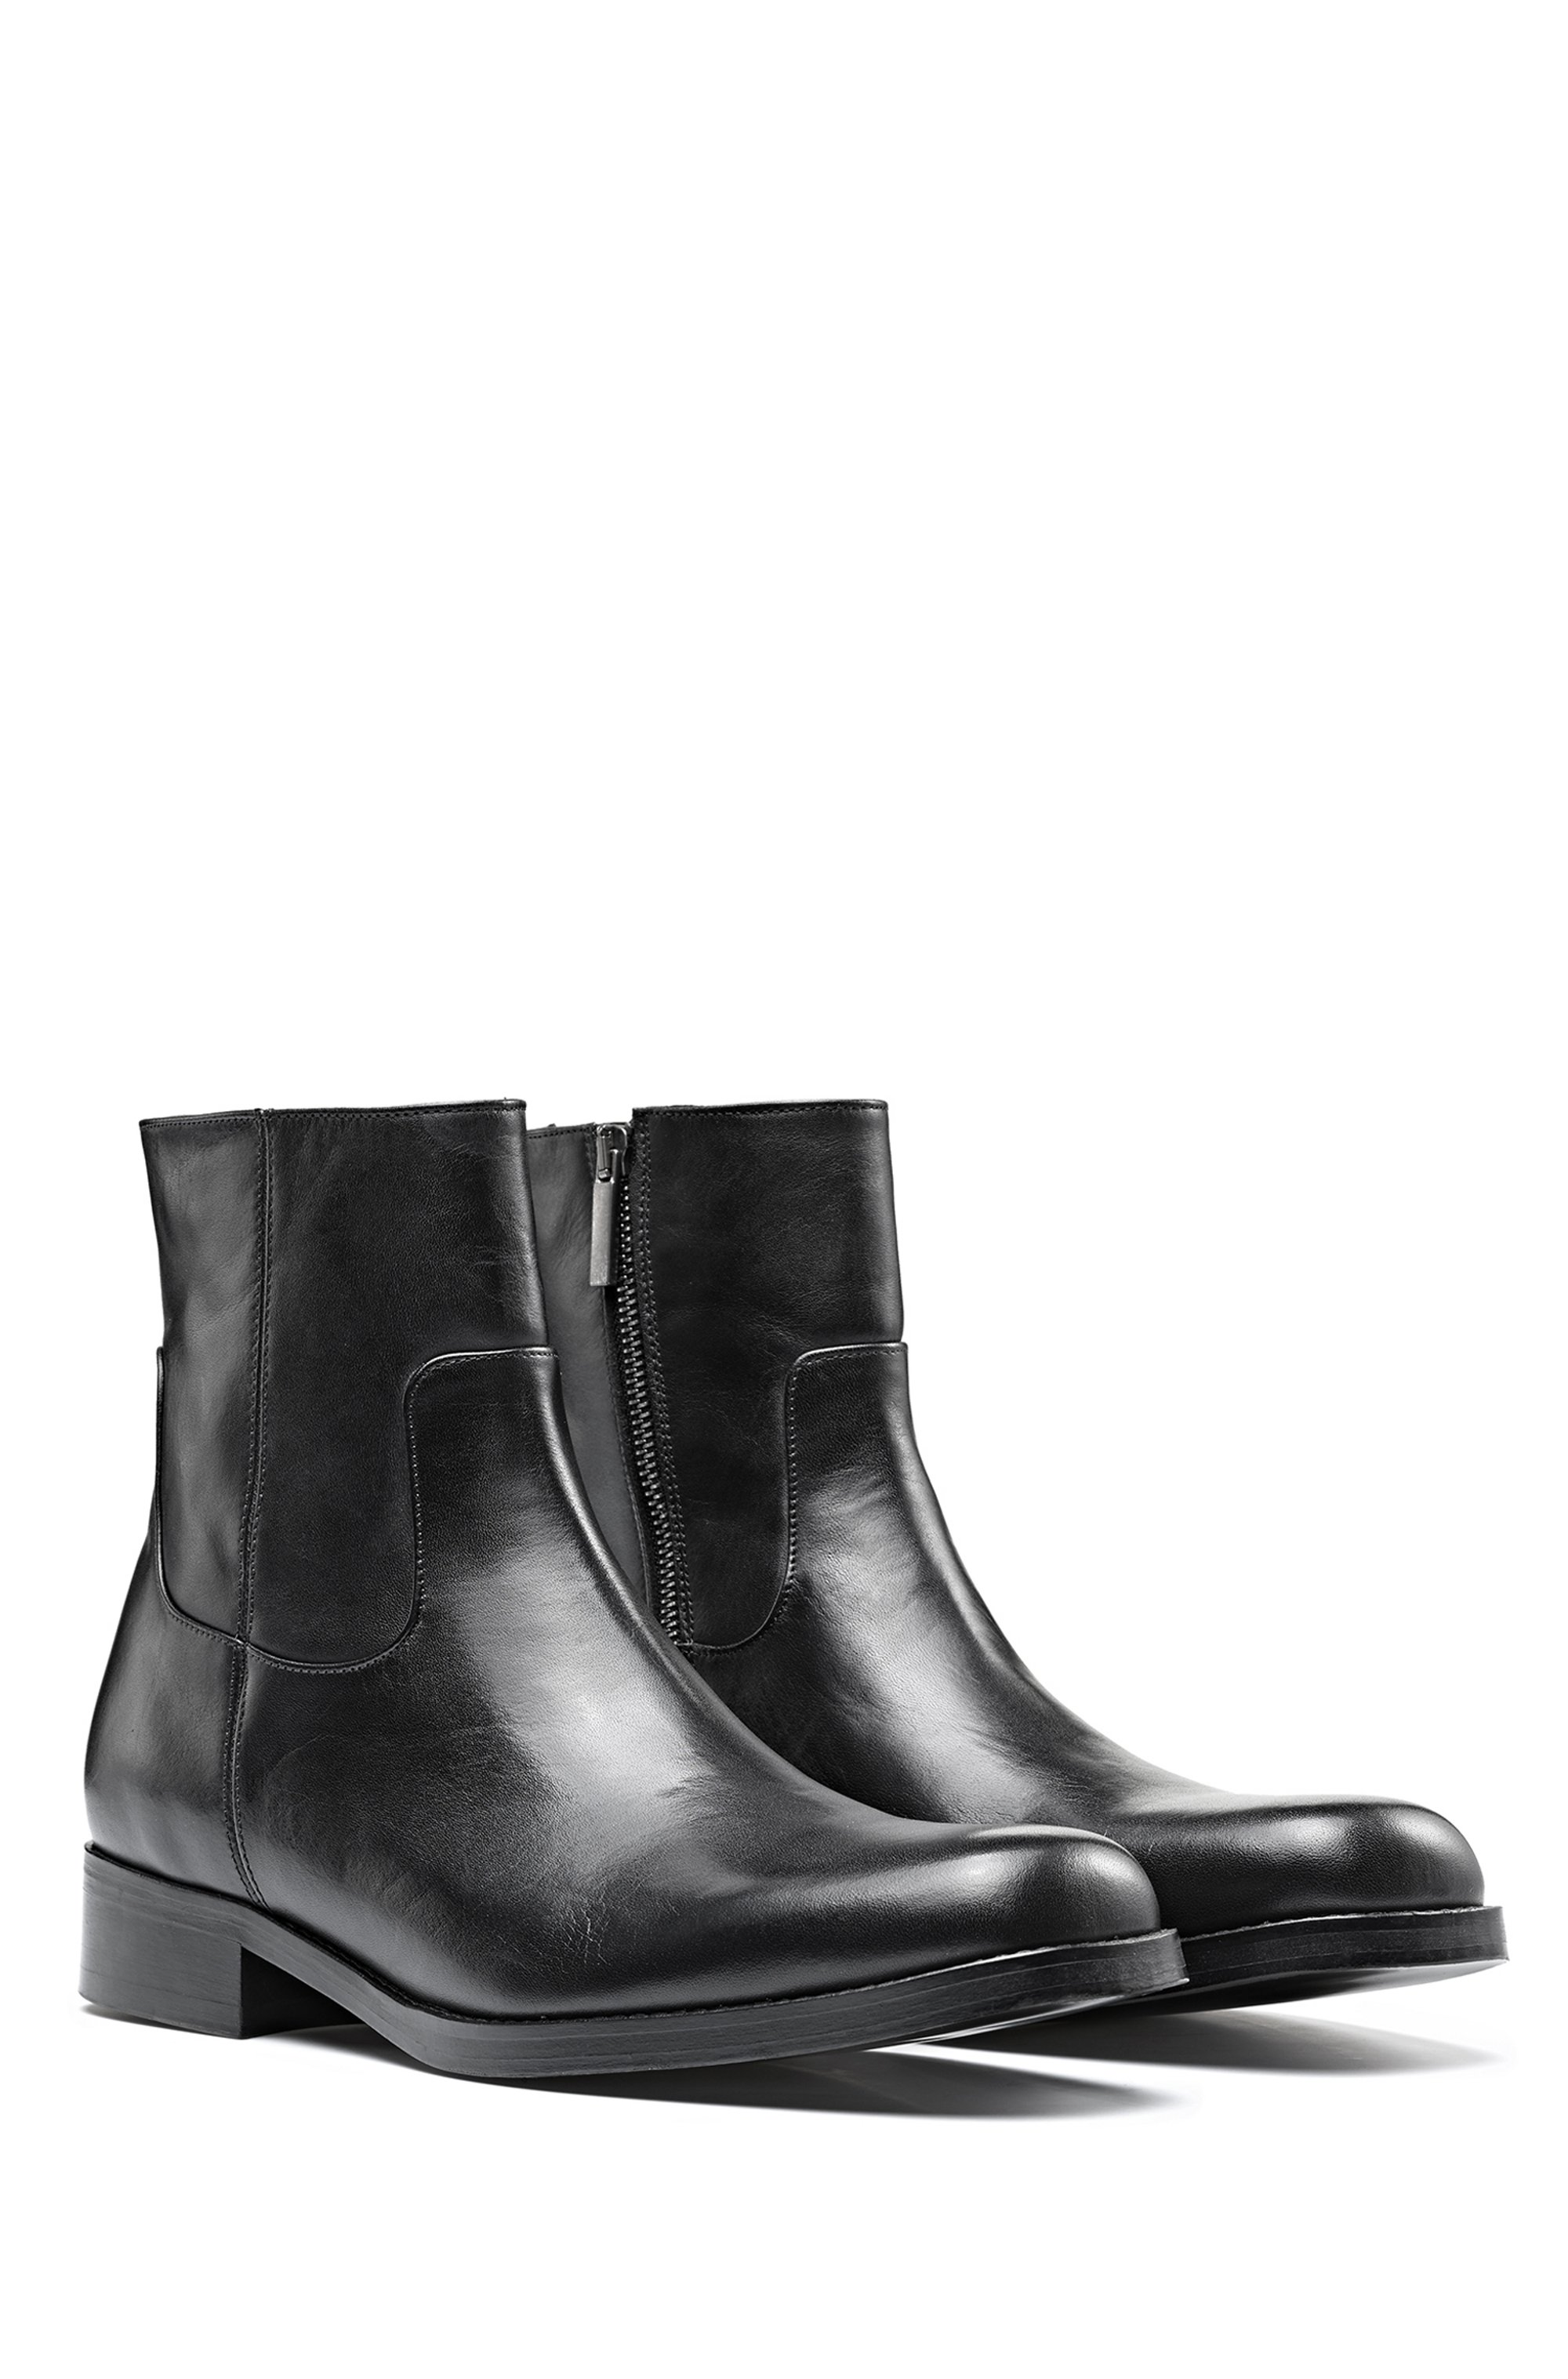 Zipped ankle boots in grained leather